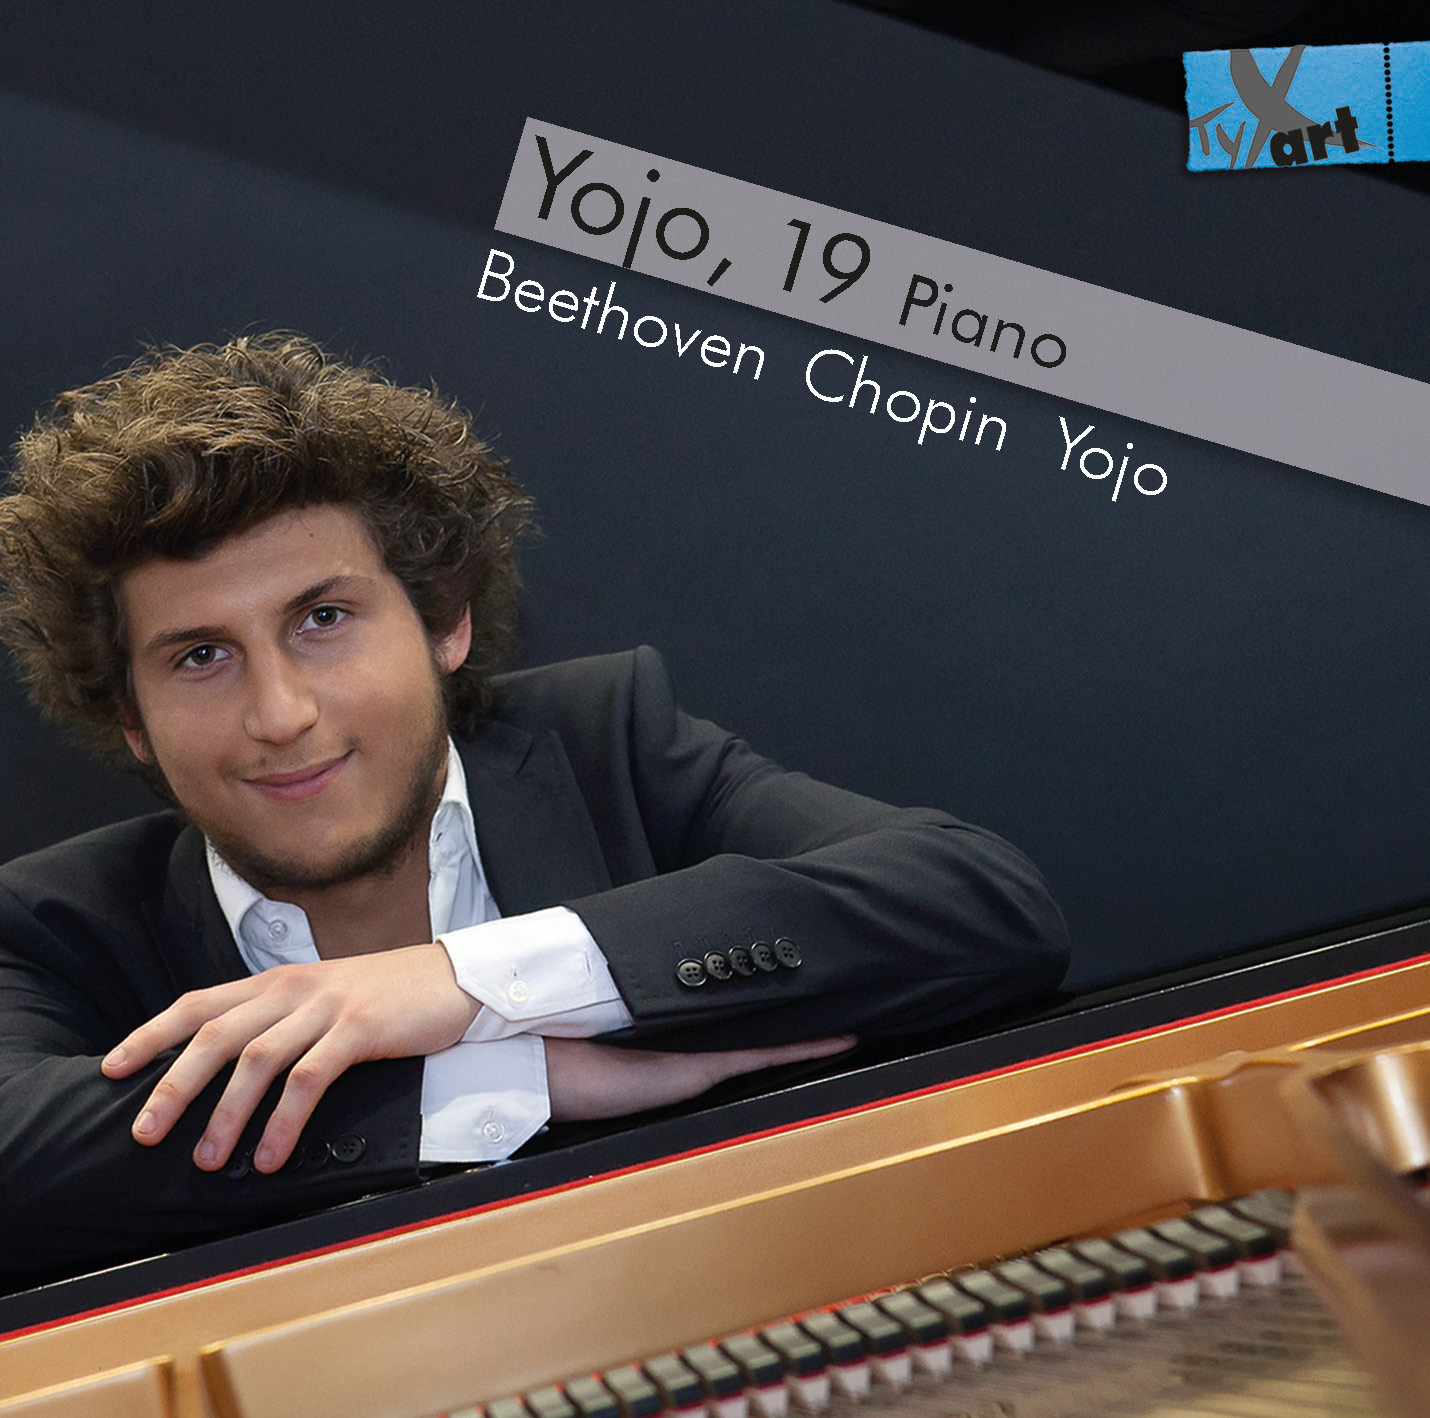 Yojo, 19, Piano - CD 2016